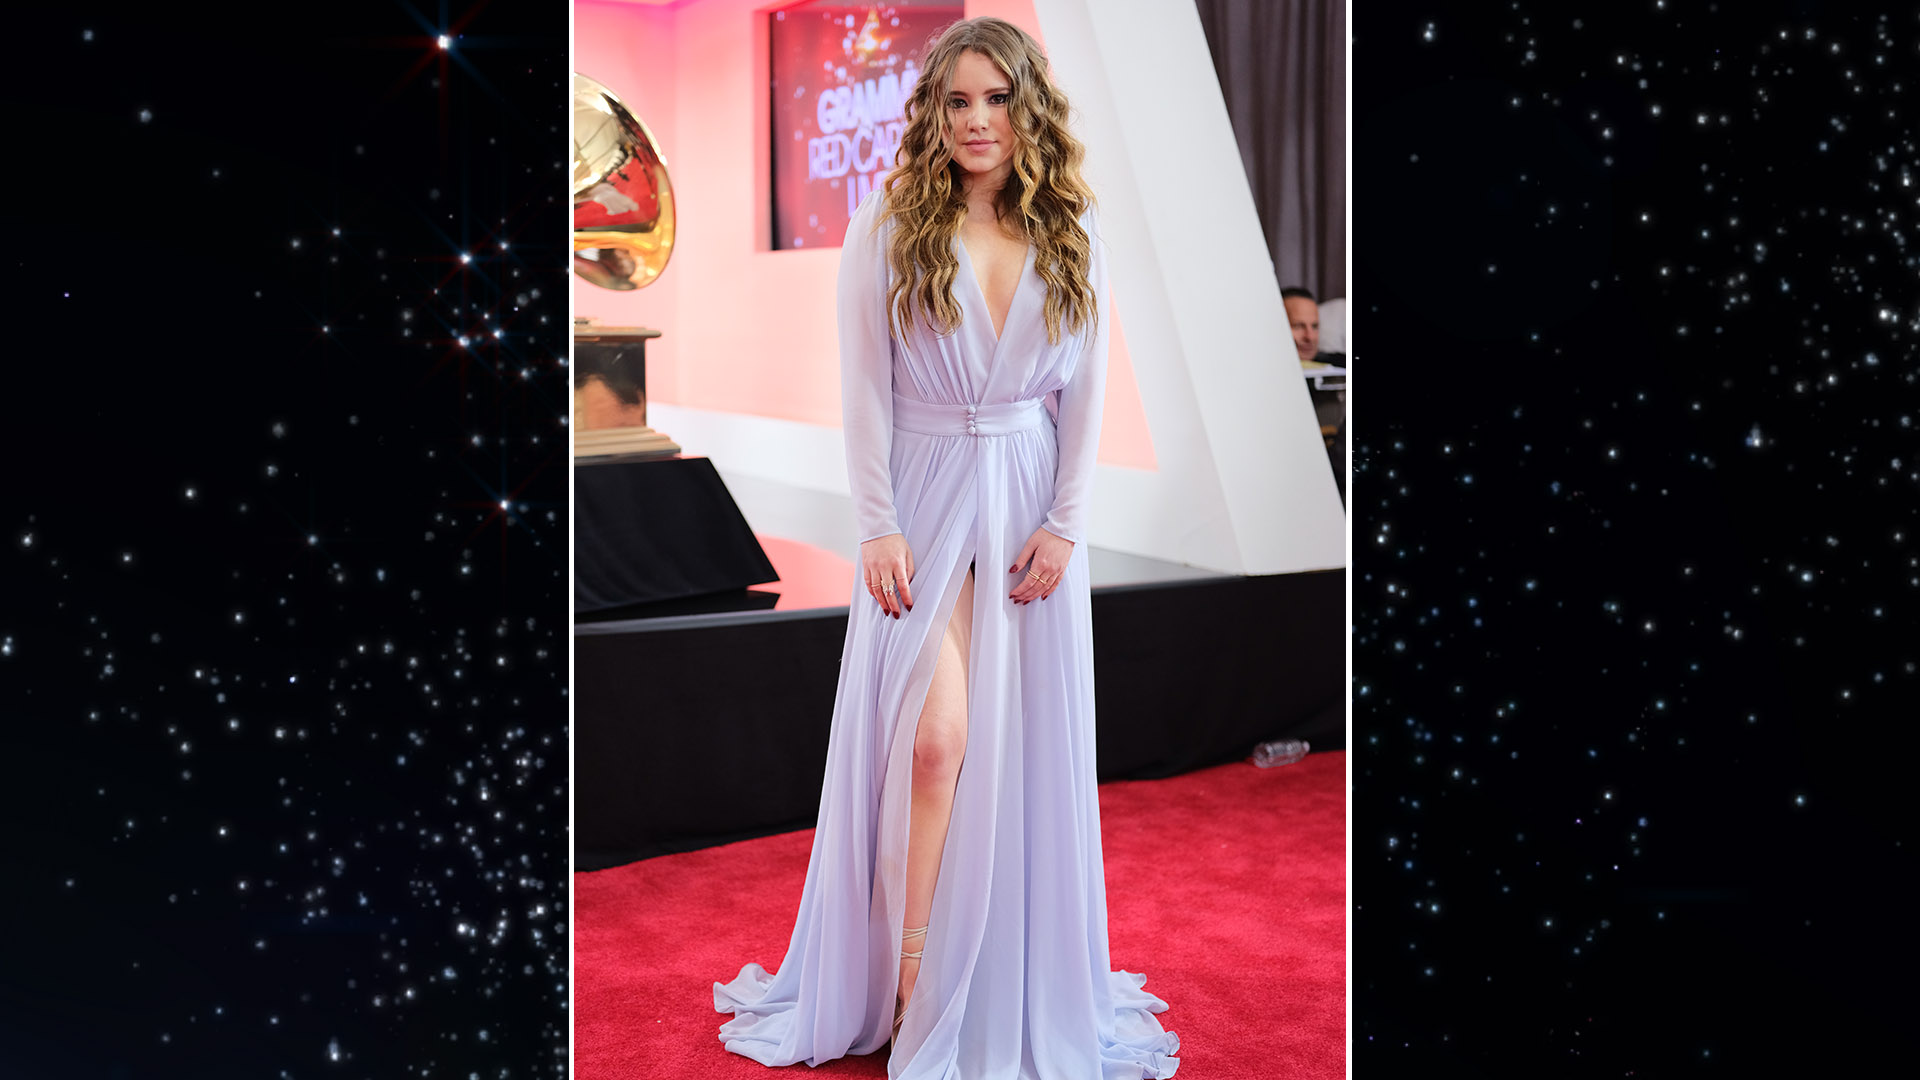 Kevin Can Wait star Taylor Spreitler shows a little leg on the 60th Annual GRAMMY Awards red carpet.